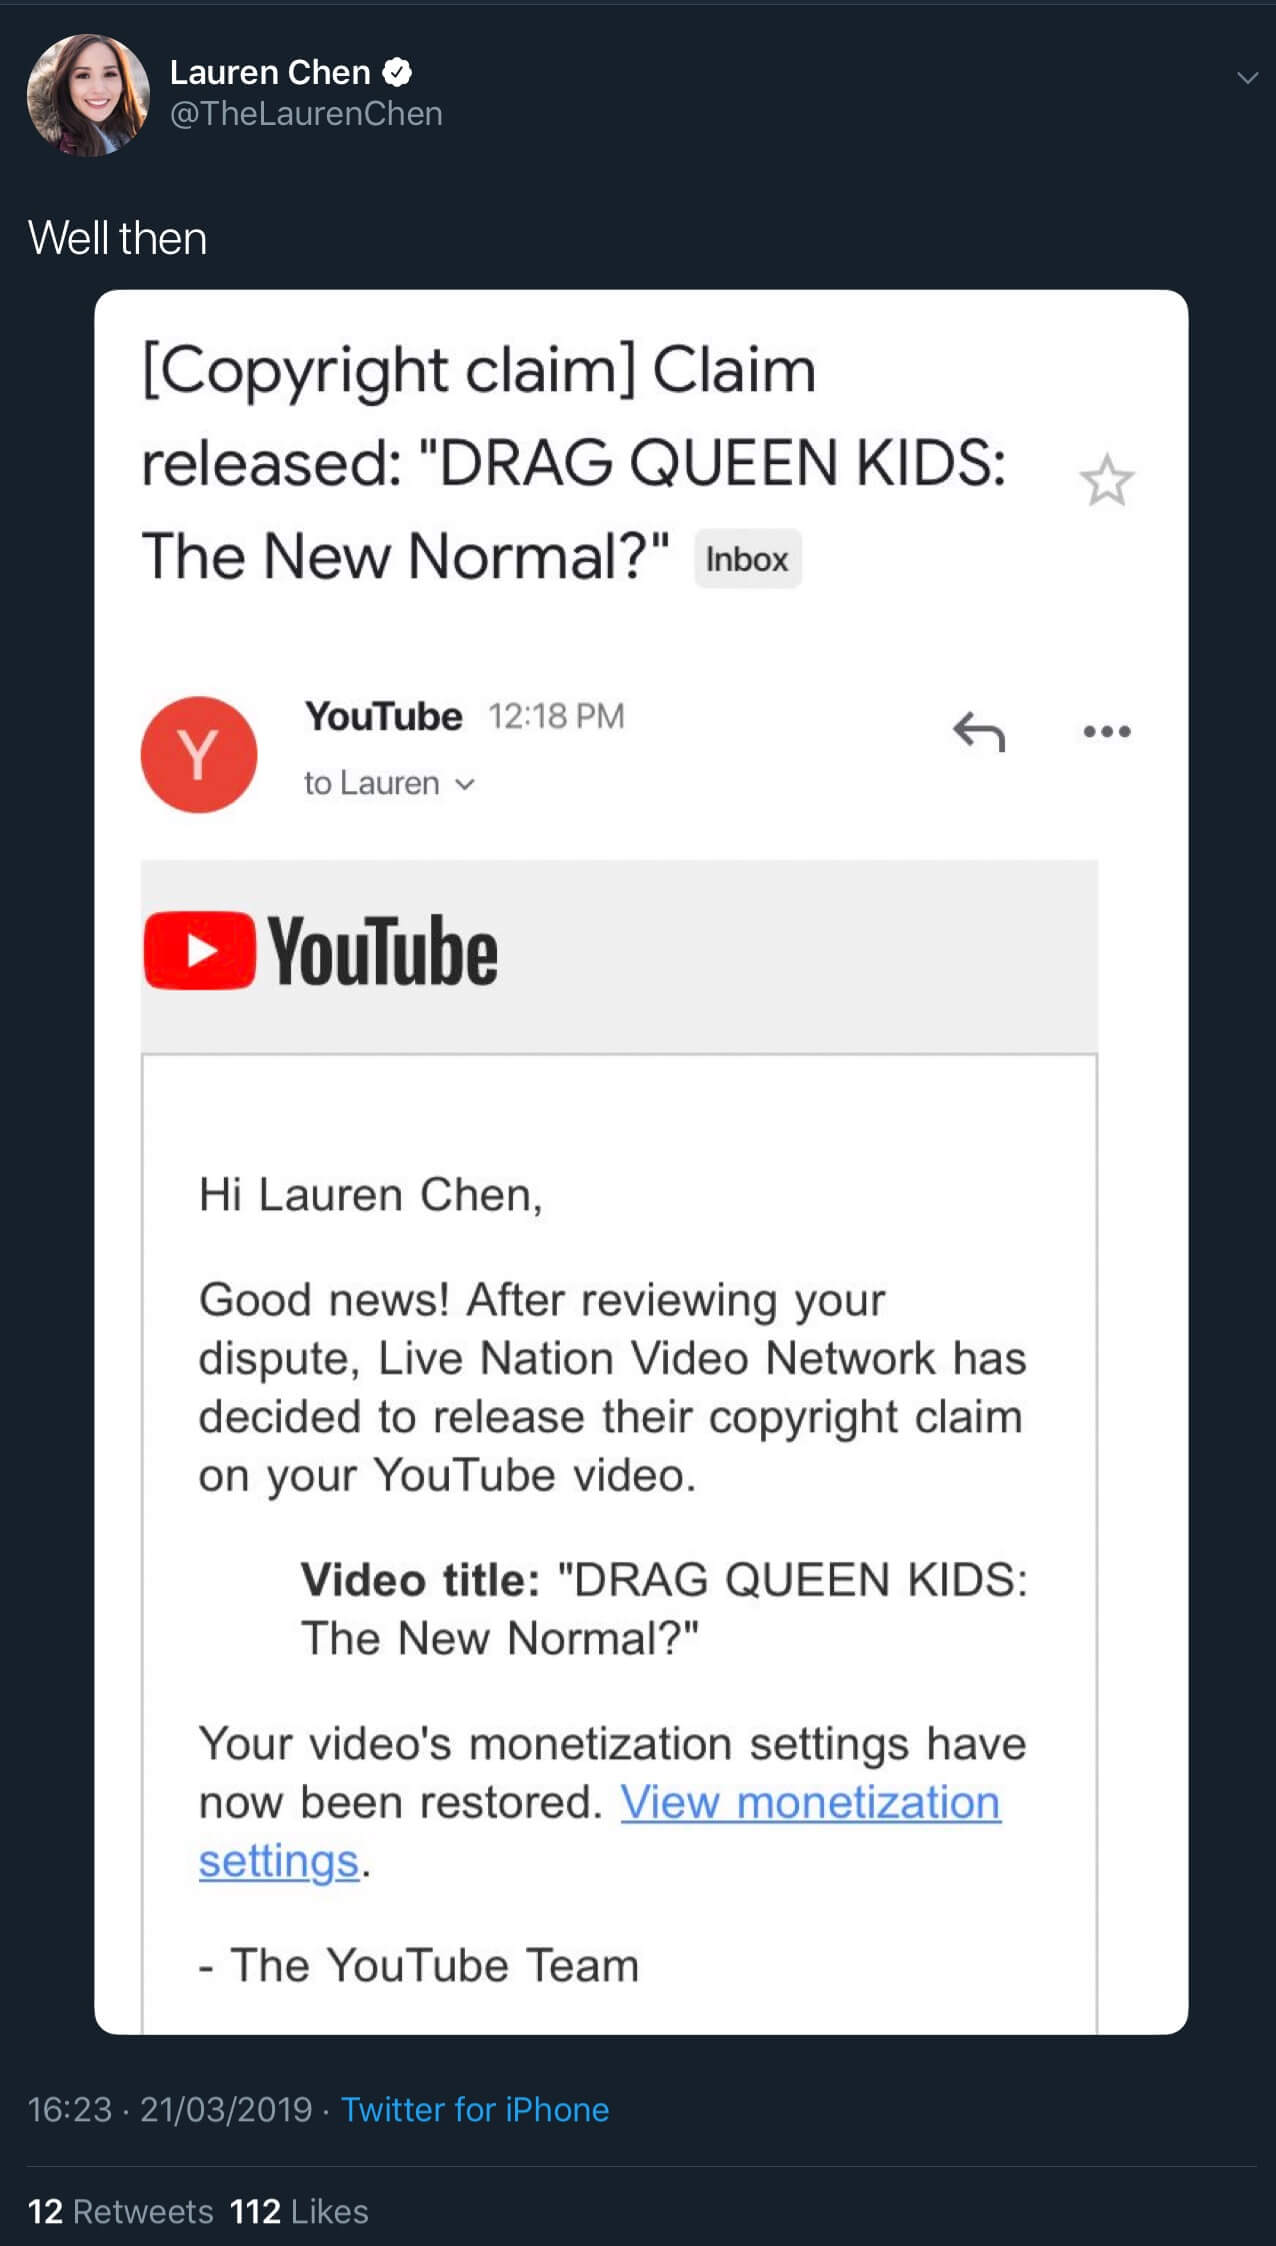 Alternative text: A tweet showing that the fake copyright claim against Lauren Chen's video has been released.